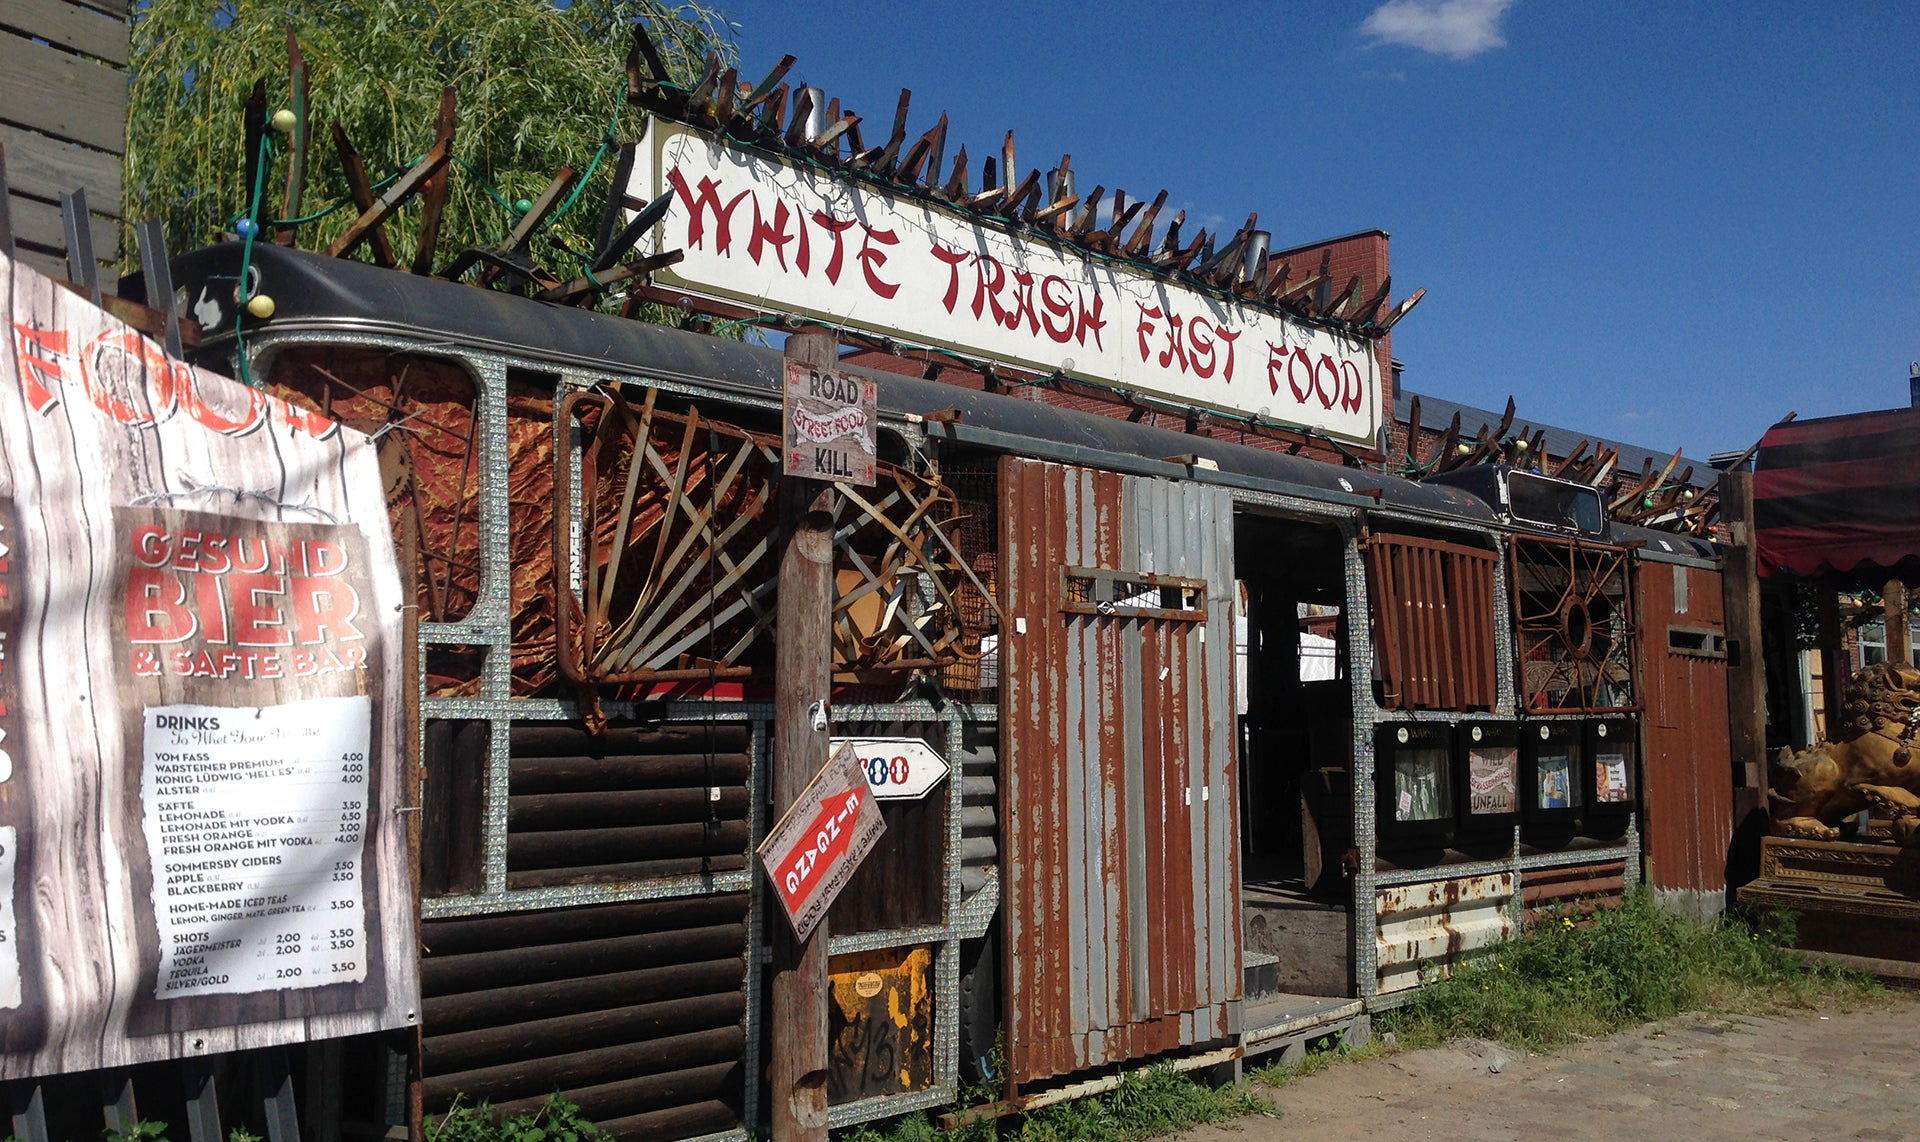 Food Stop at White Trash Food